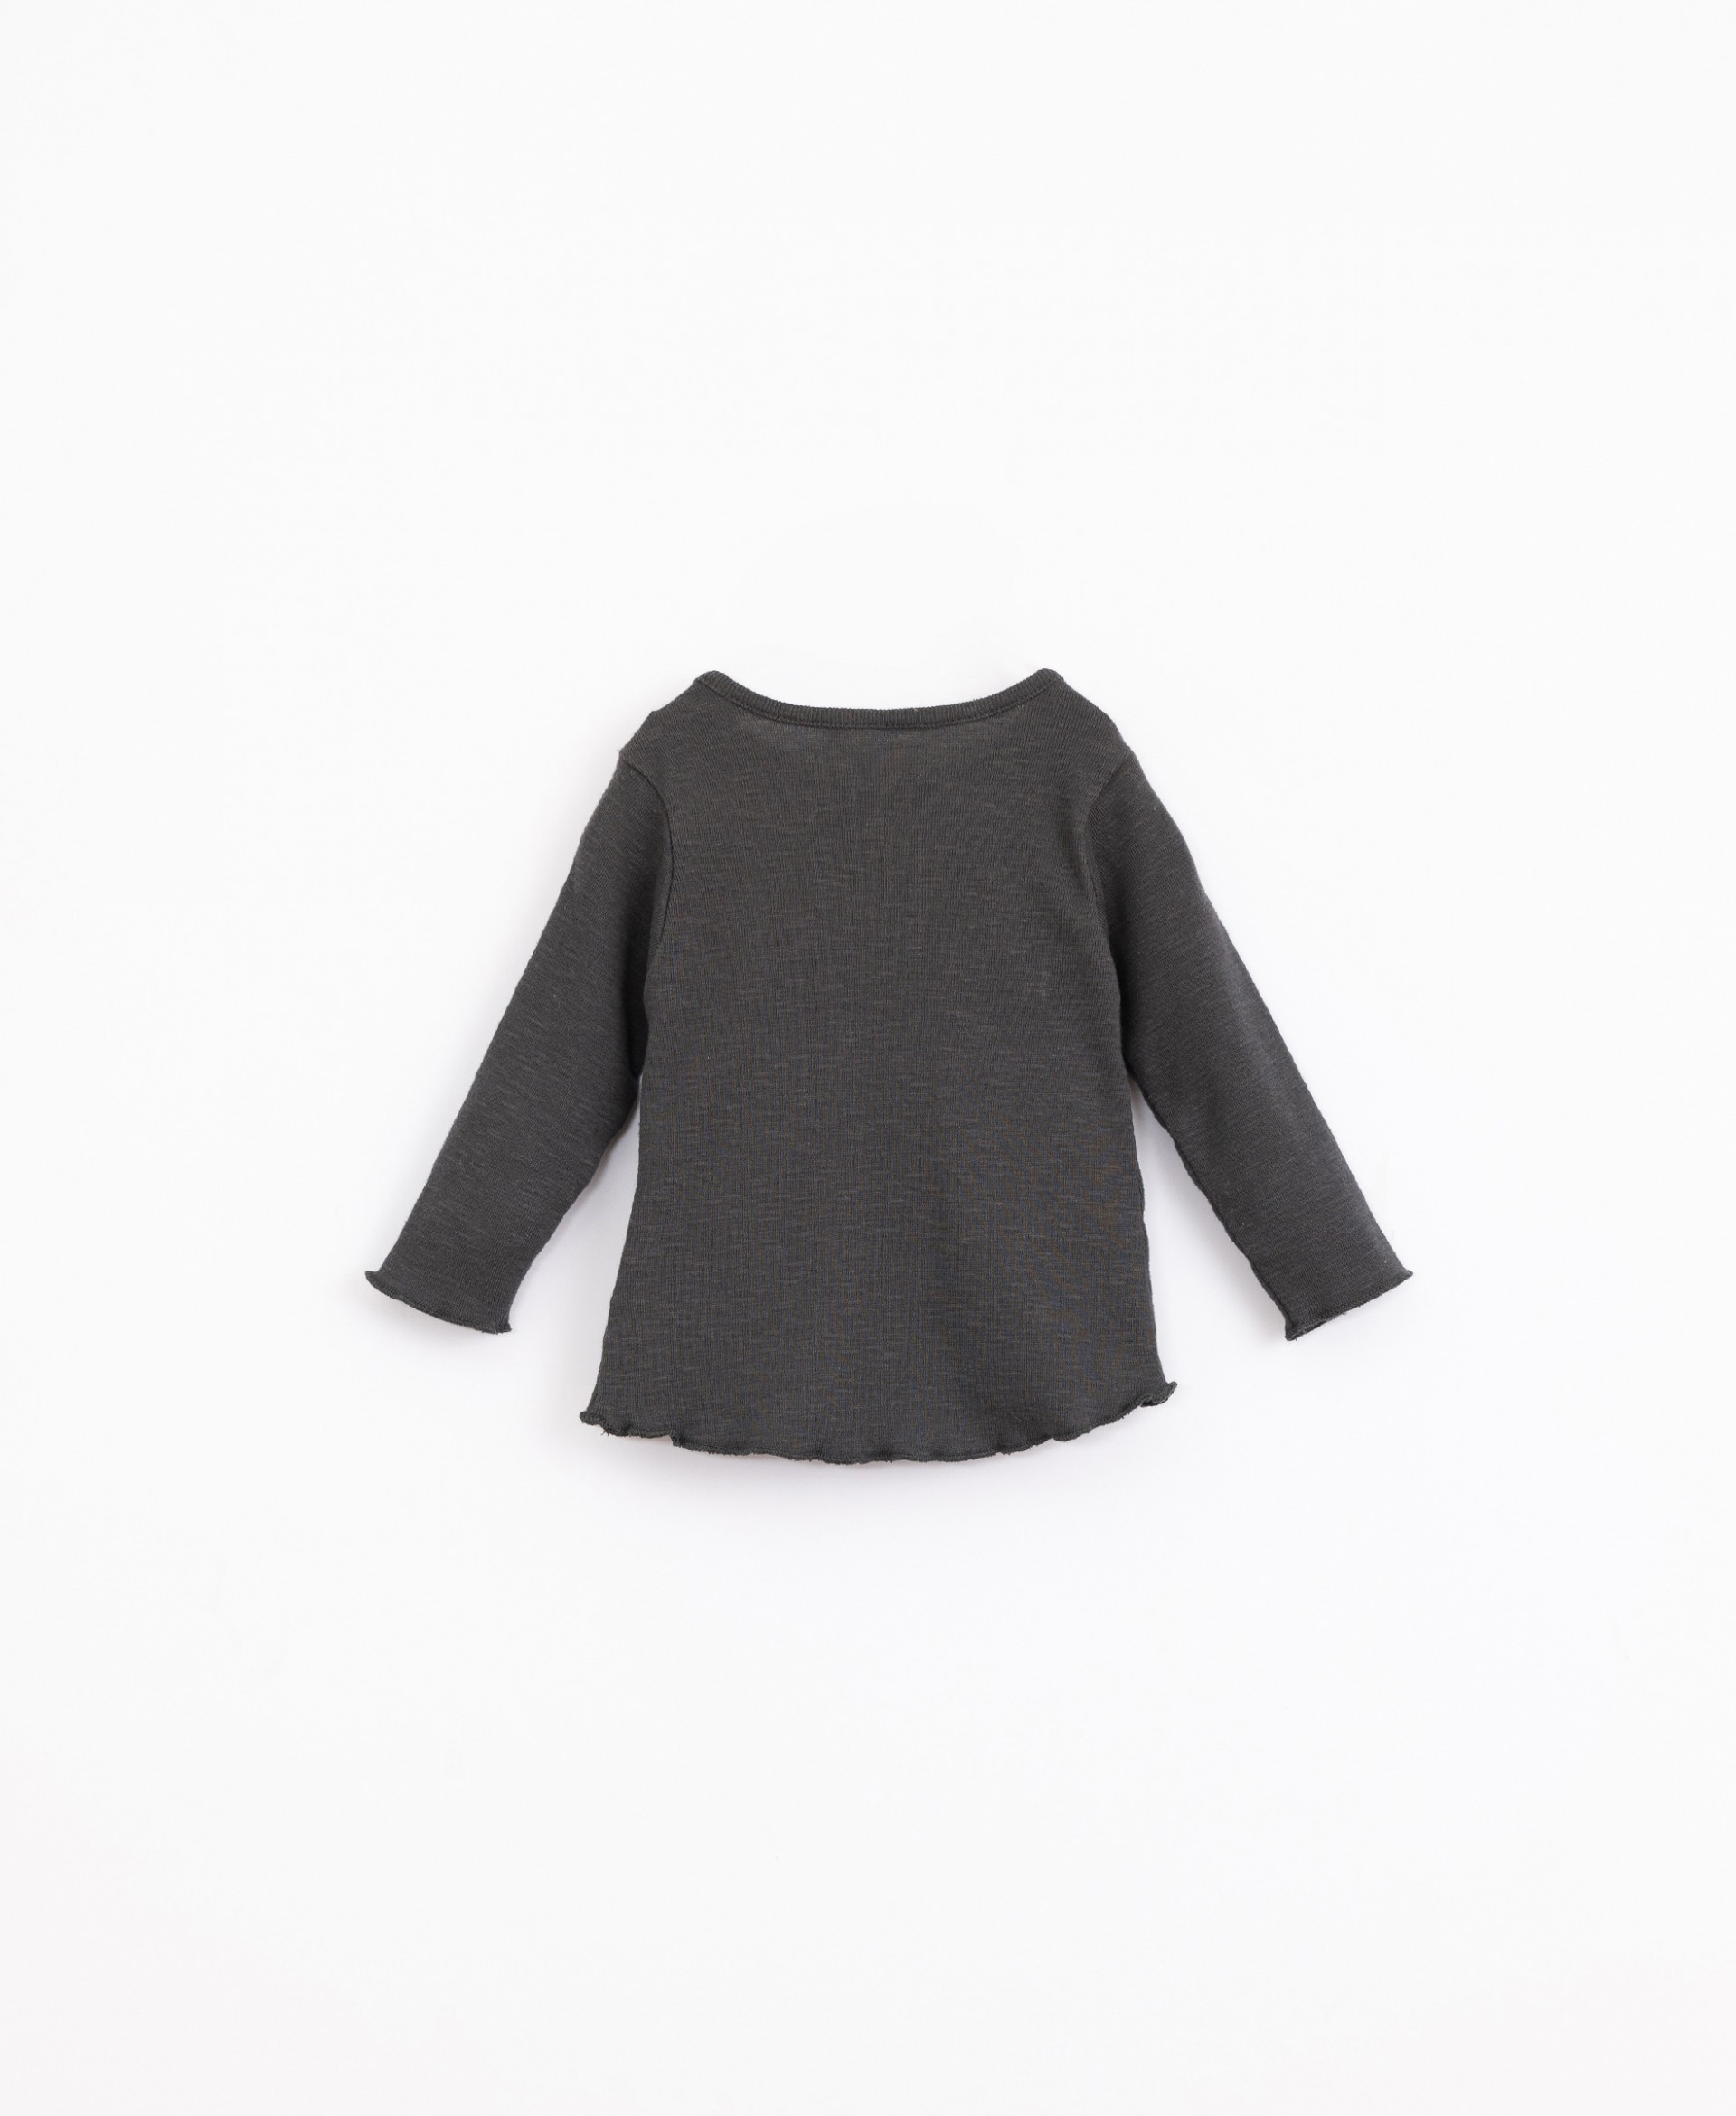 T-shirt in organic cotton with shoulder opening | Illustration